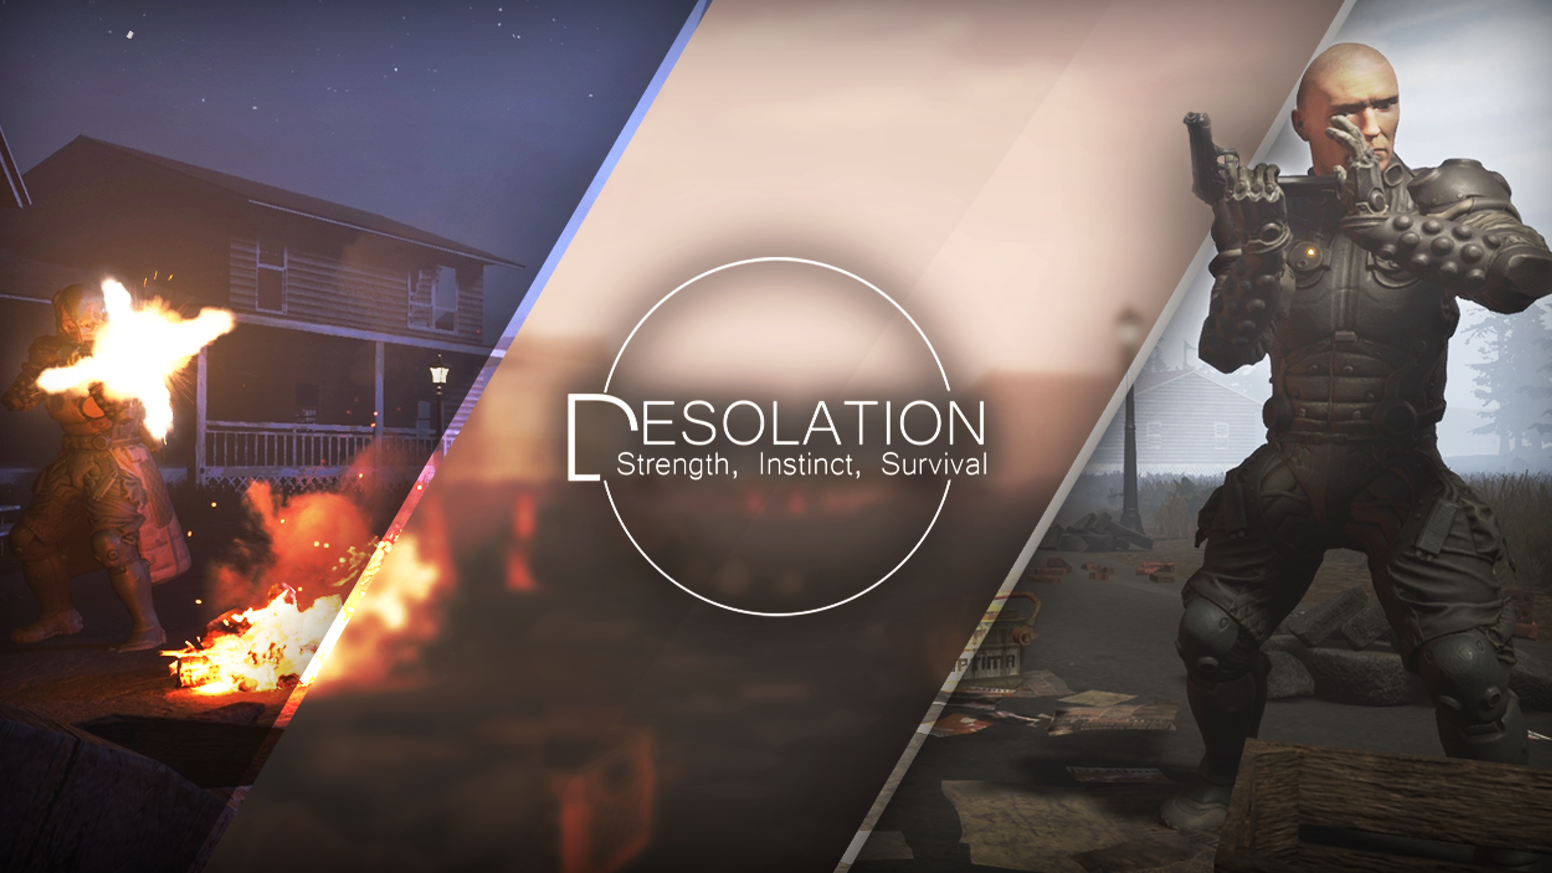 Desolation is a tactical, stealthy Battle Royale Project aimed at giving the community the epic fight to the death they deserve.